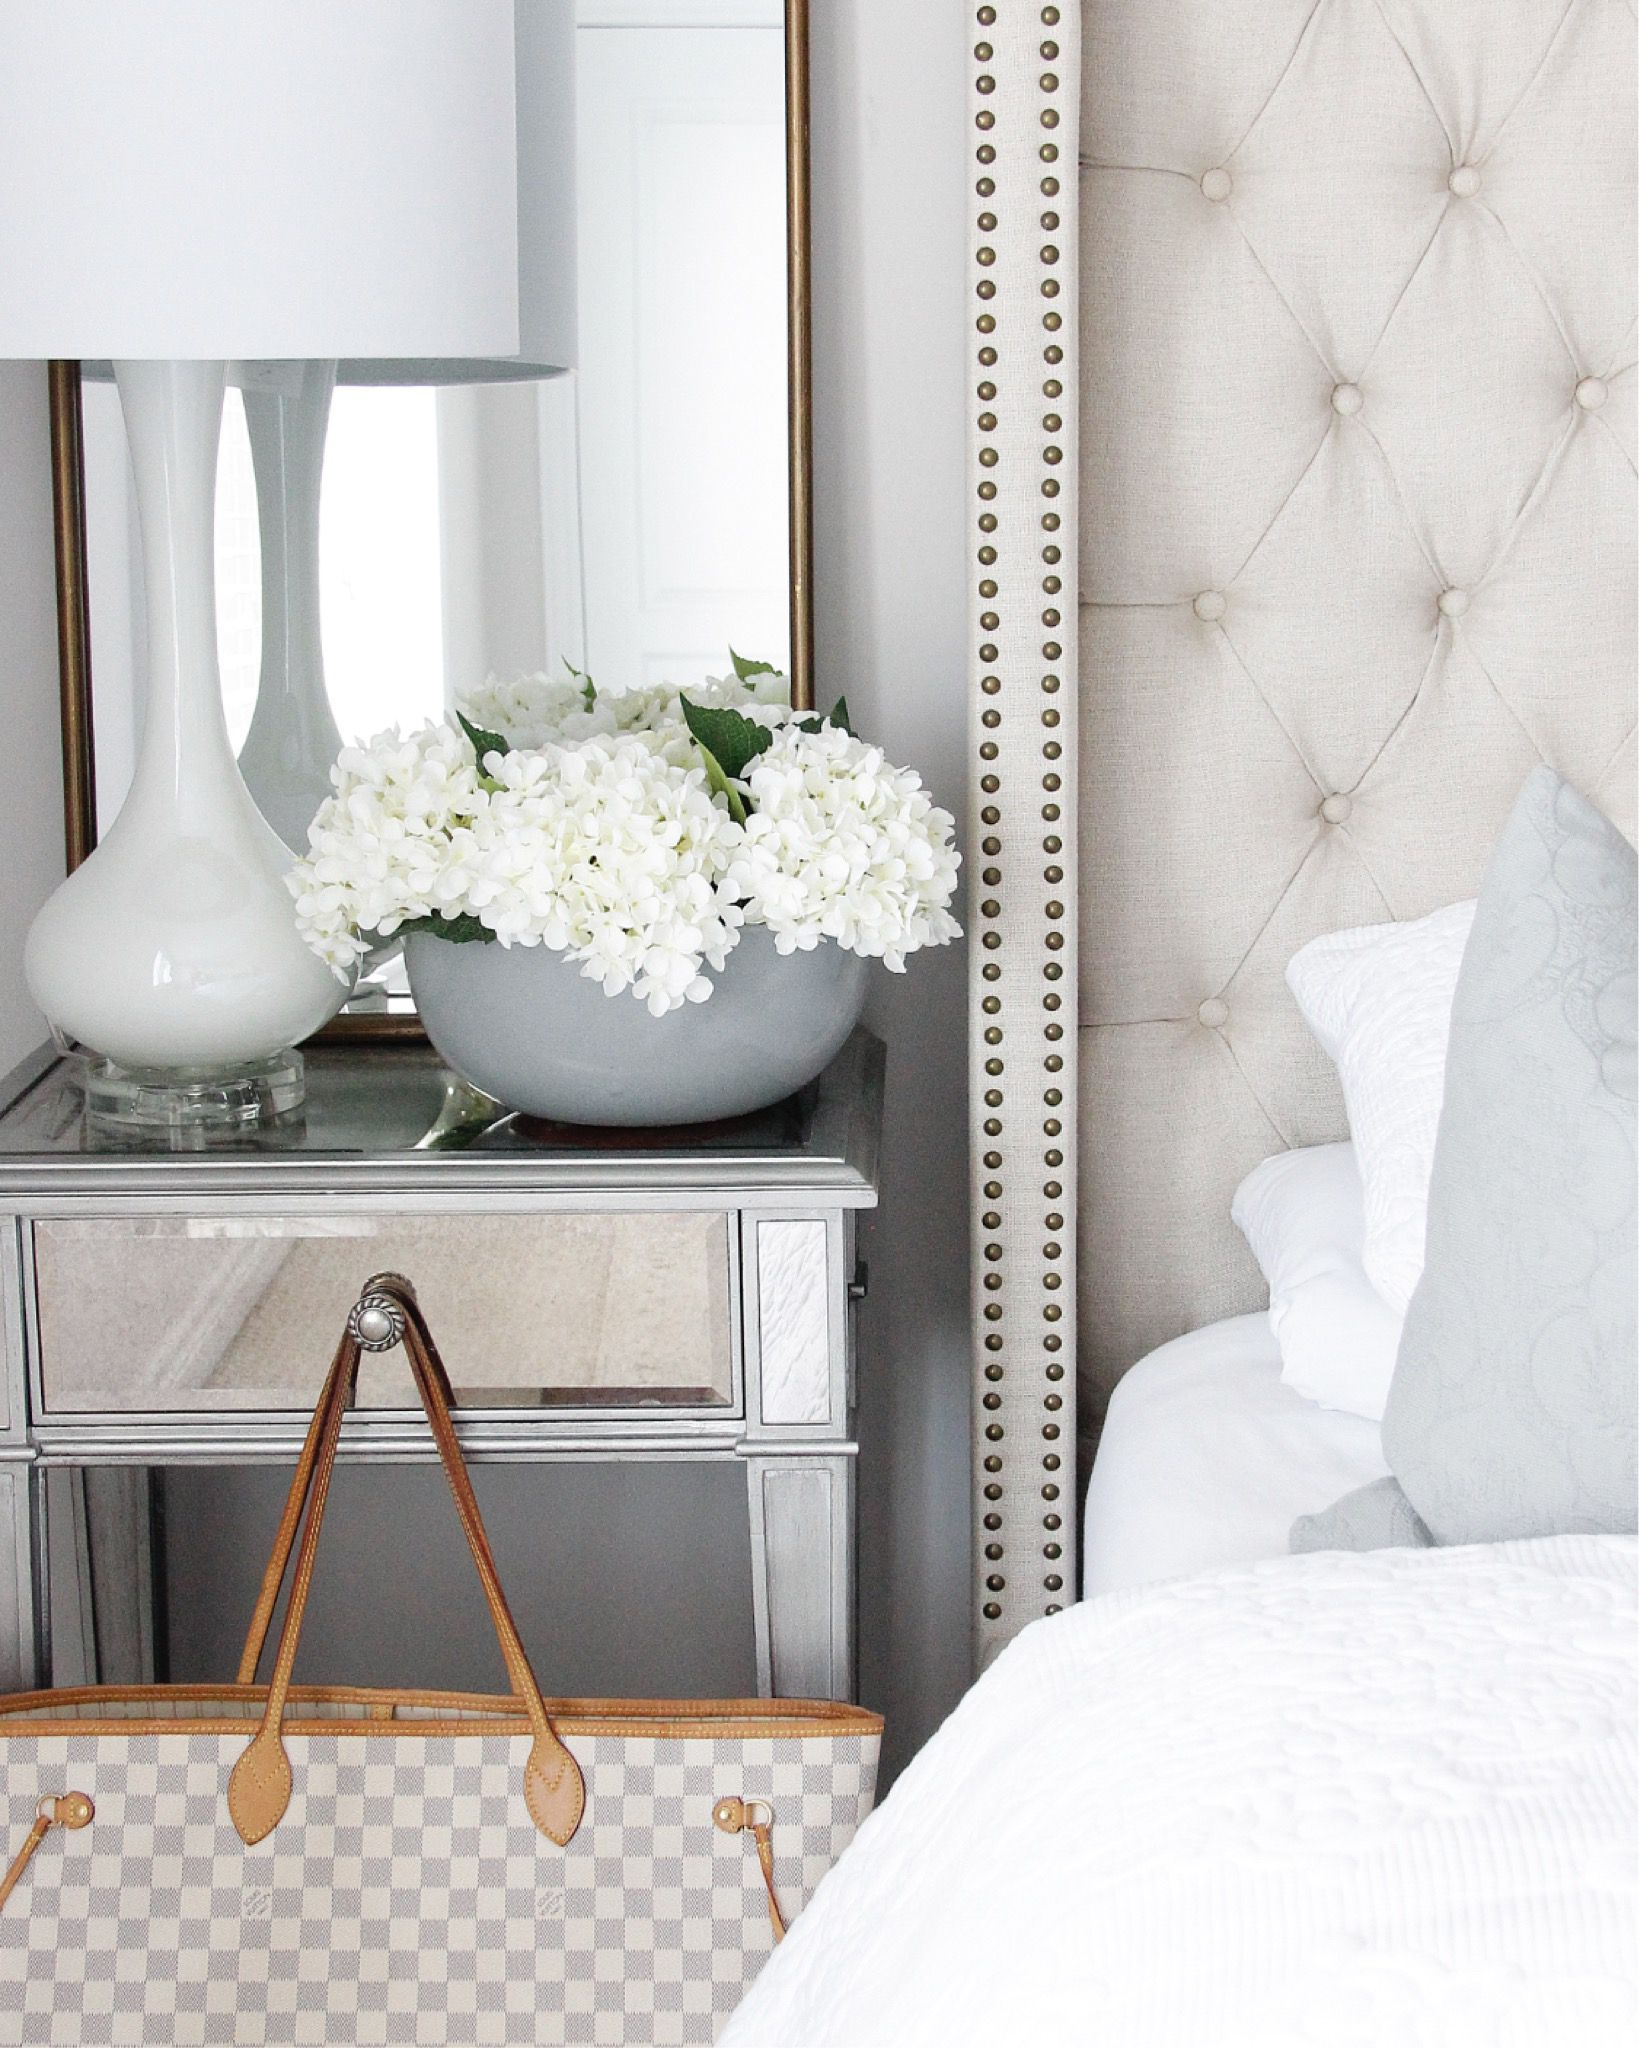 Tap photo to shop the look or follow along on Instagram: @p.arruda #Bedroom #MirroredNightstand #TuftedBed #NeutralBedroom #WhiteHome